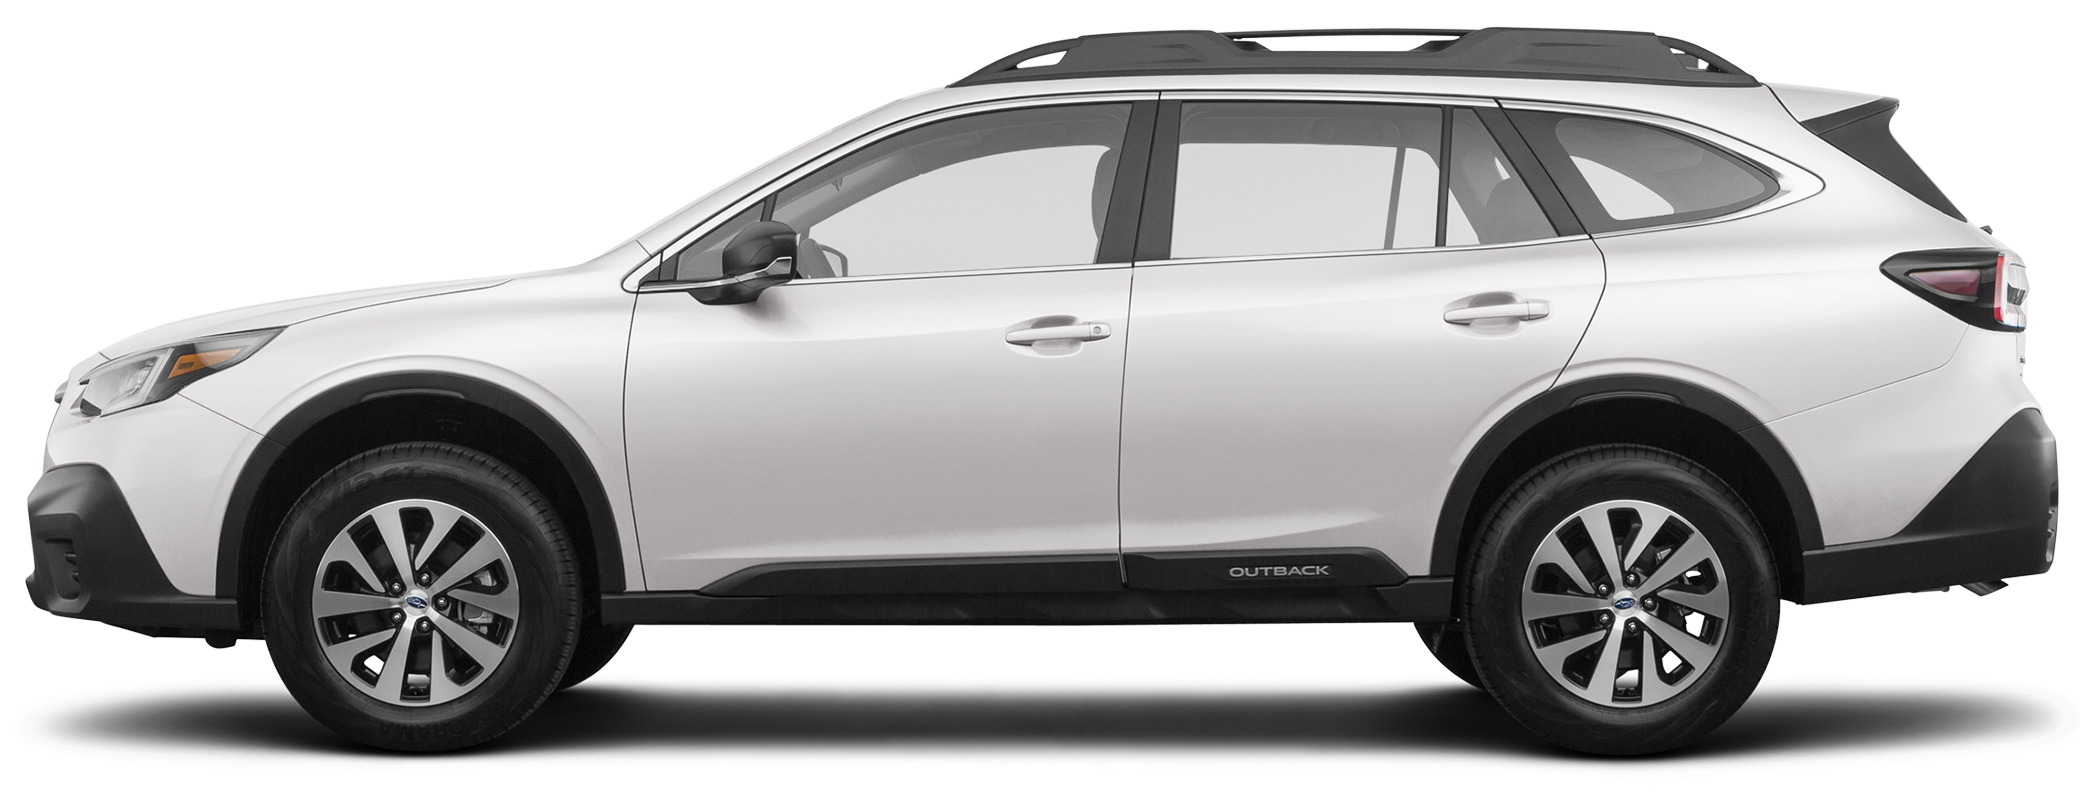 2020 Subaru Outback SUV Base Trim Level